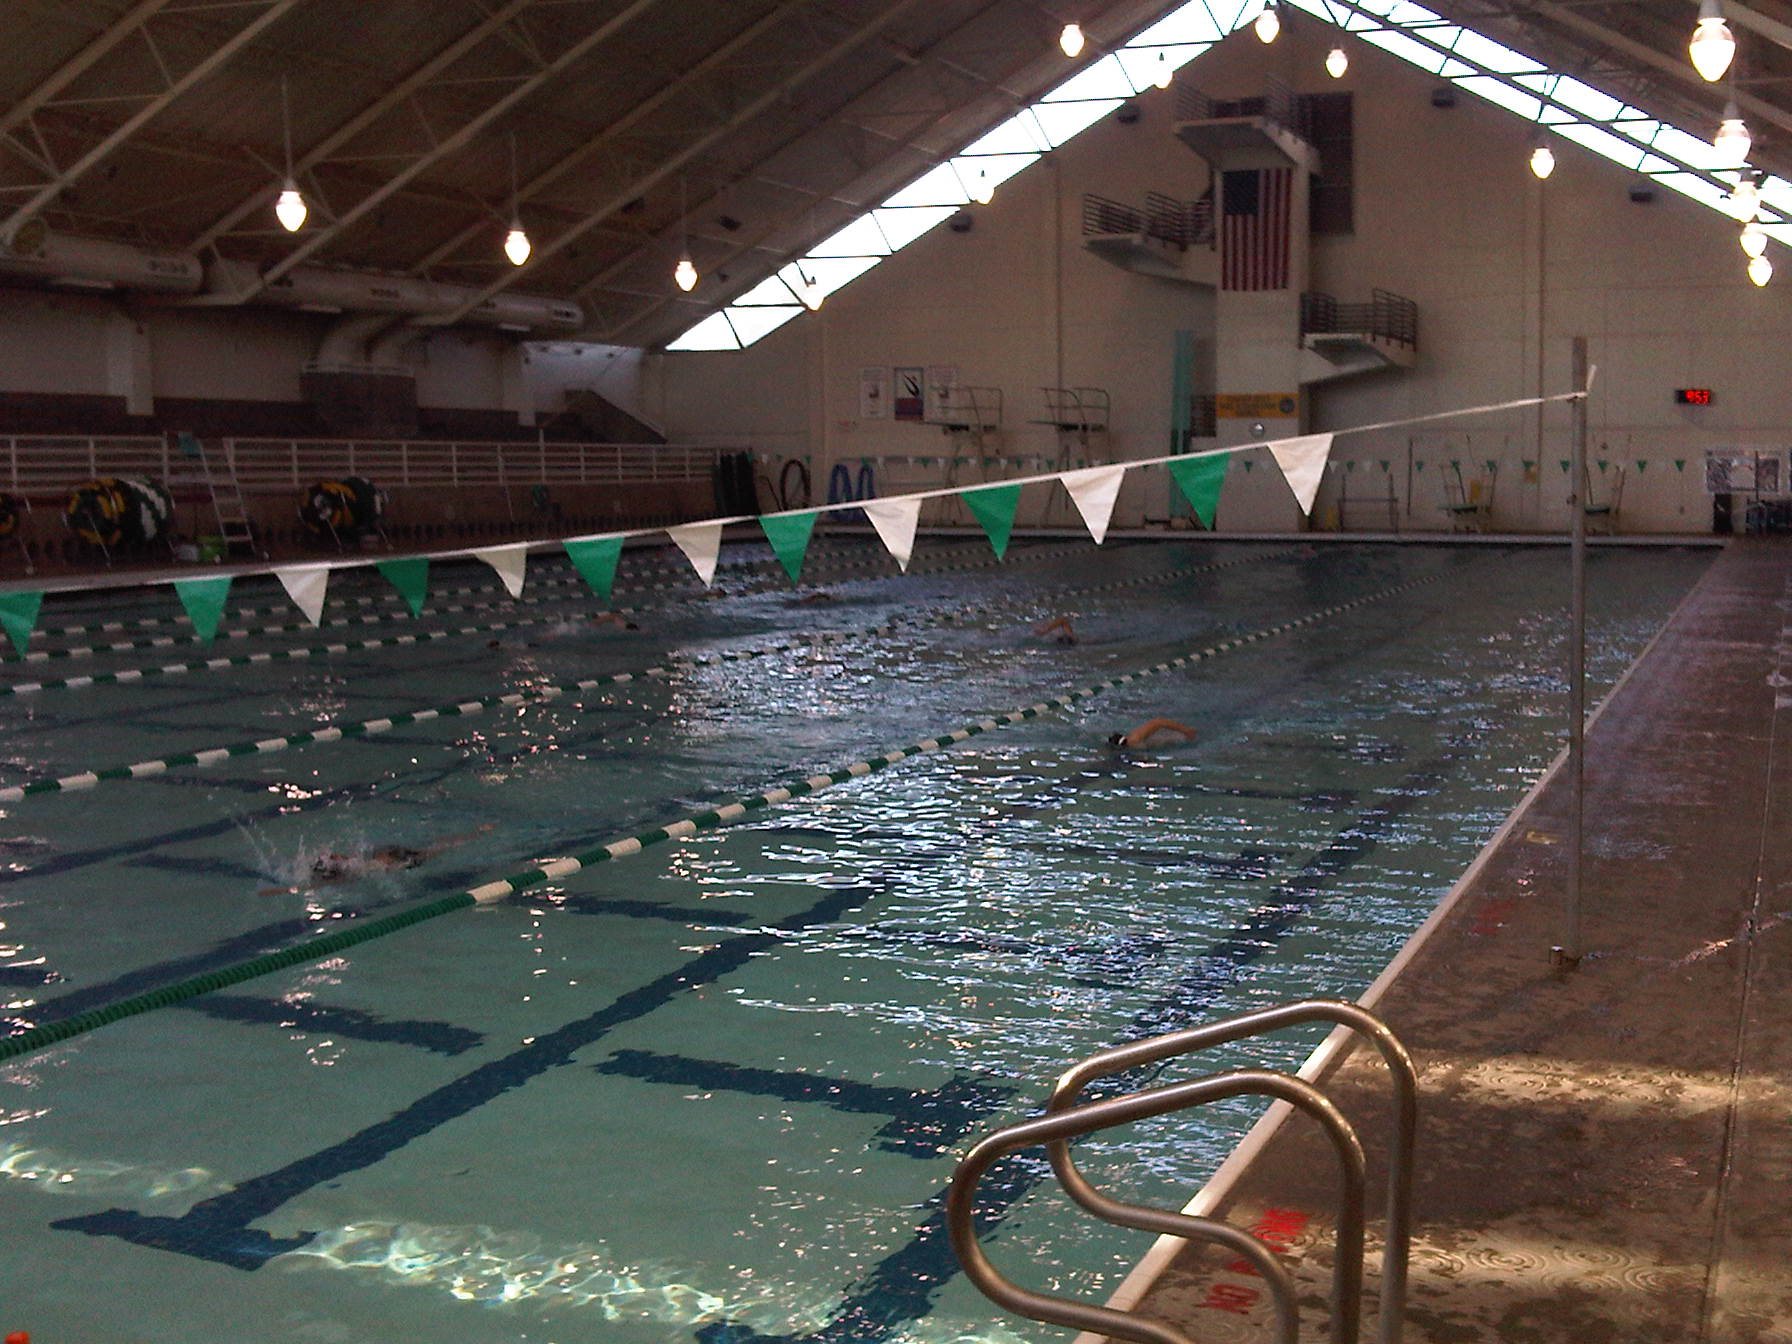 Tualatin Hills Aquatic Center (OR)